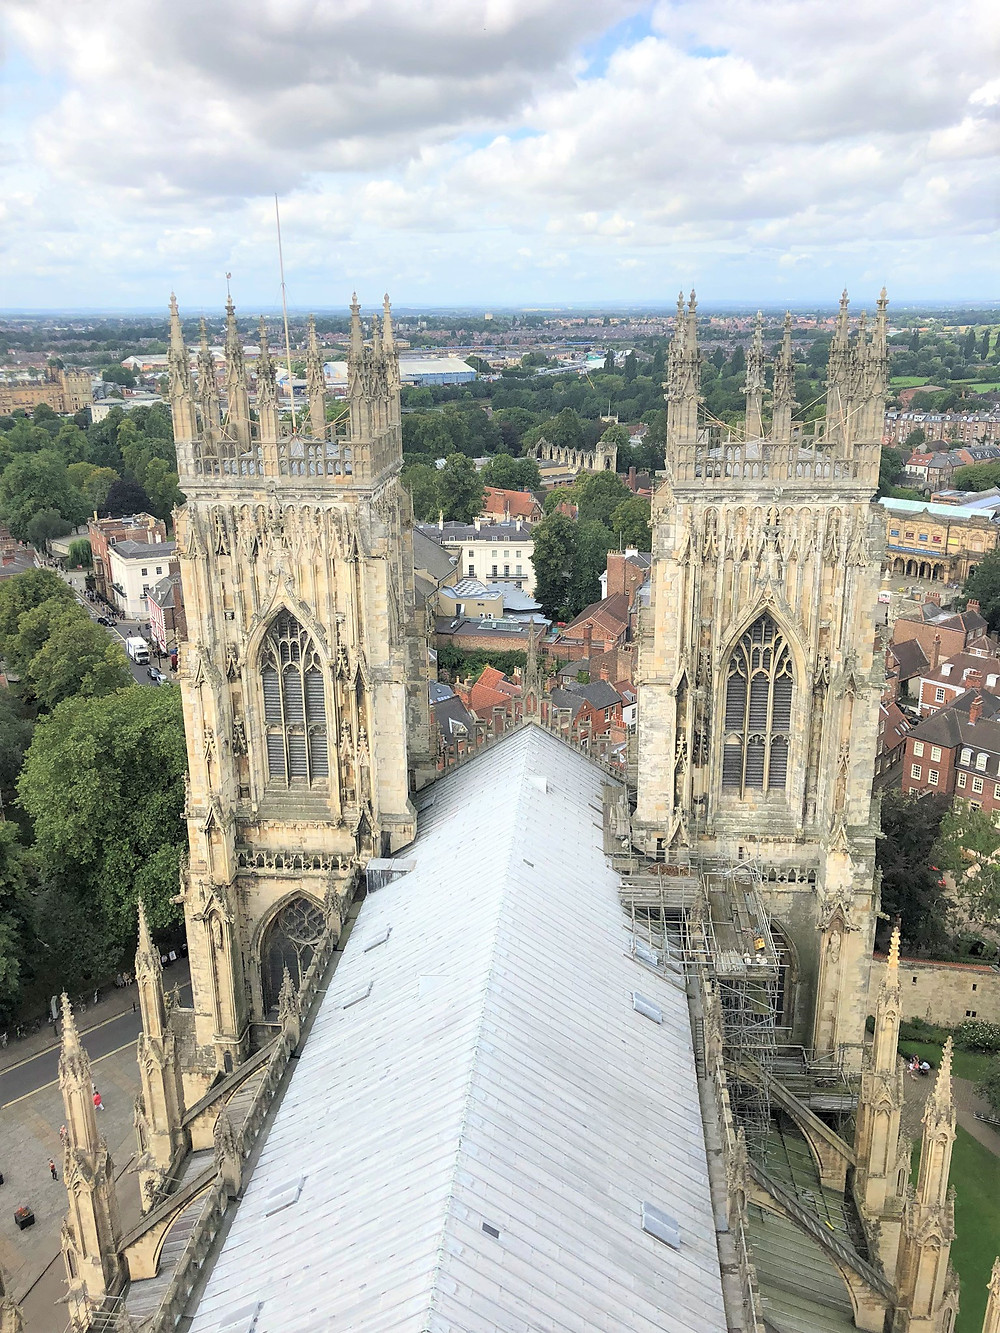 Standing on the roof of the Central Tower of York Minster with views of West Towers and surrounding village